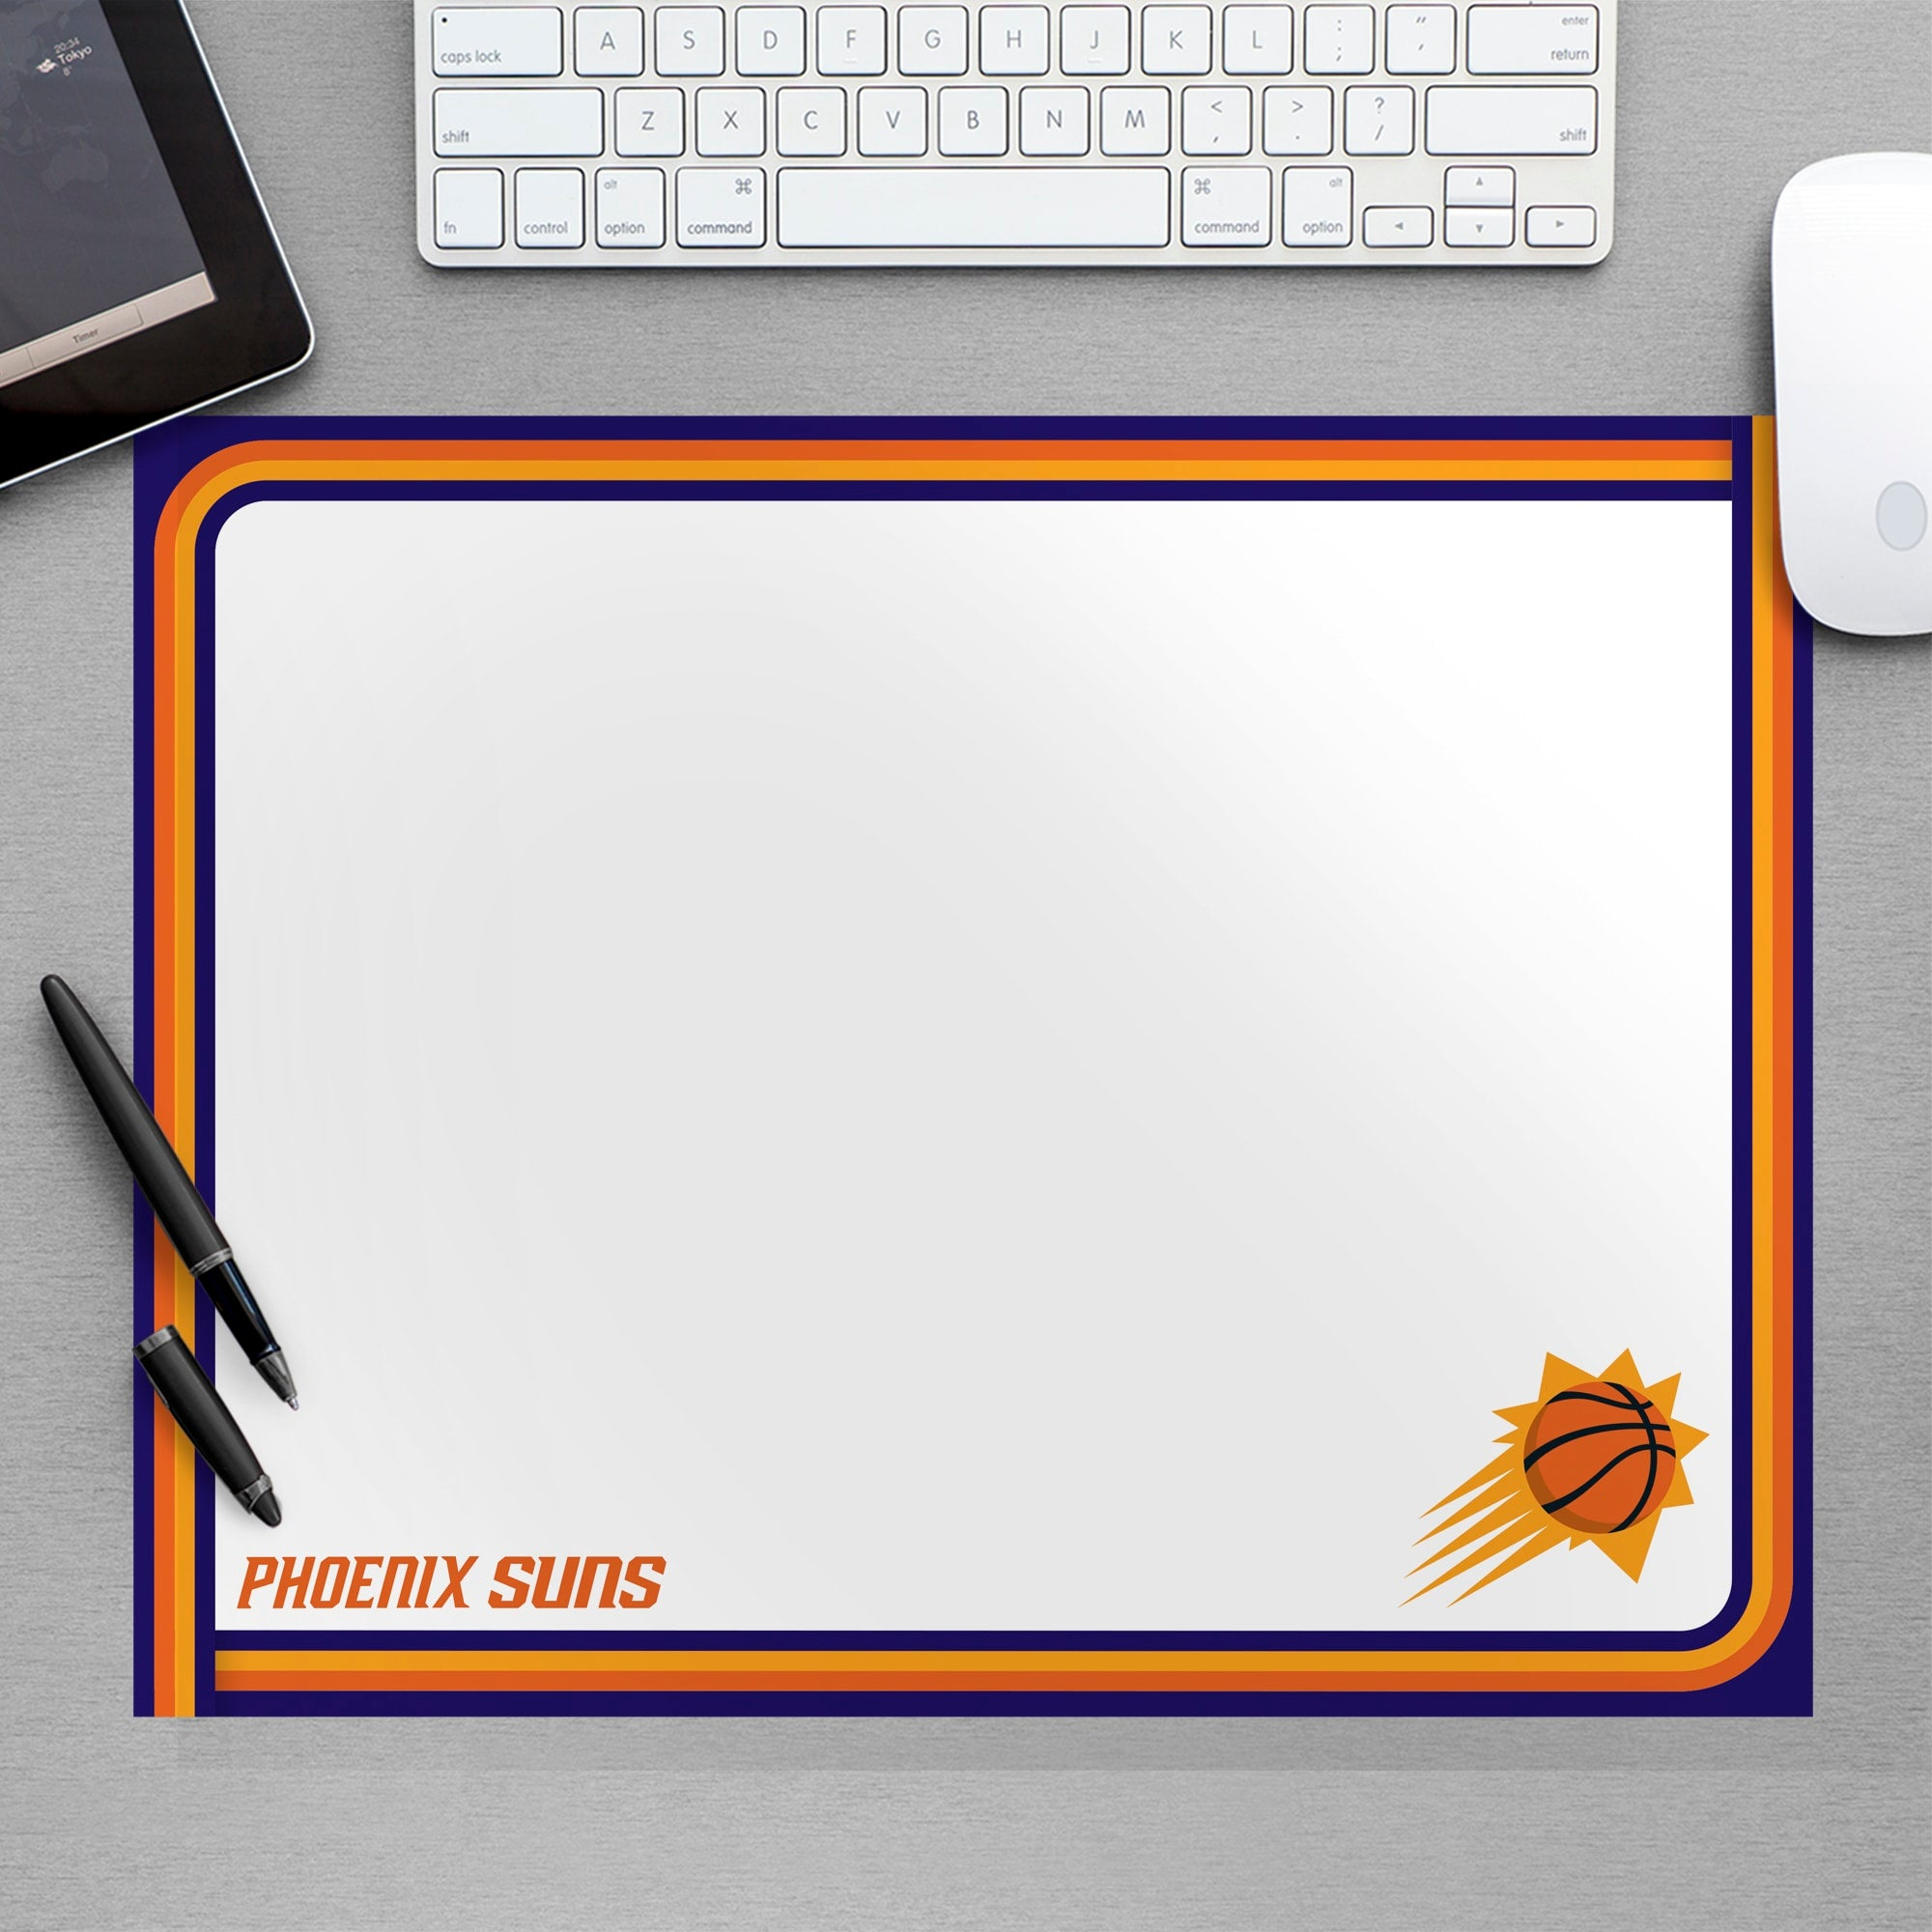 Phoenix Suns for Phoenix Suns: Dry Erase Whiteboard - Officially Licensed NBA Removable Wall Decal Large by Fathead   Vinyl